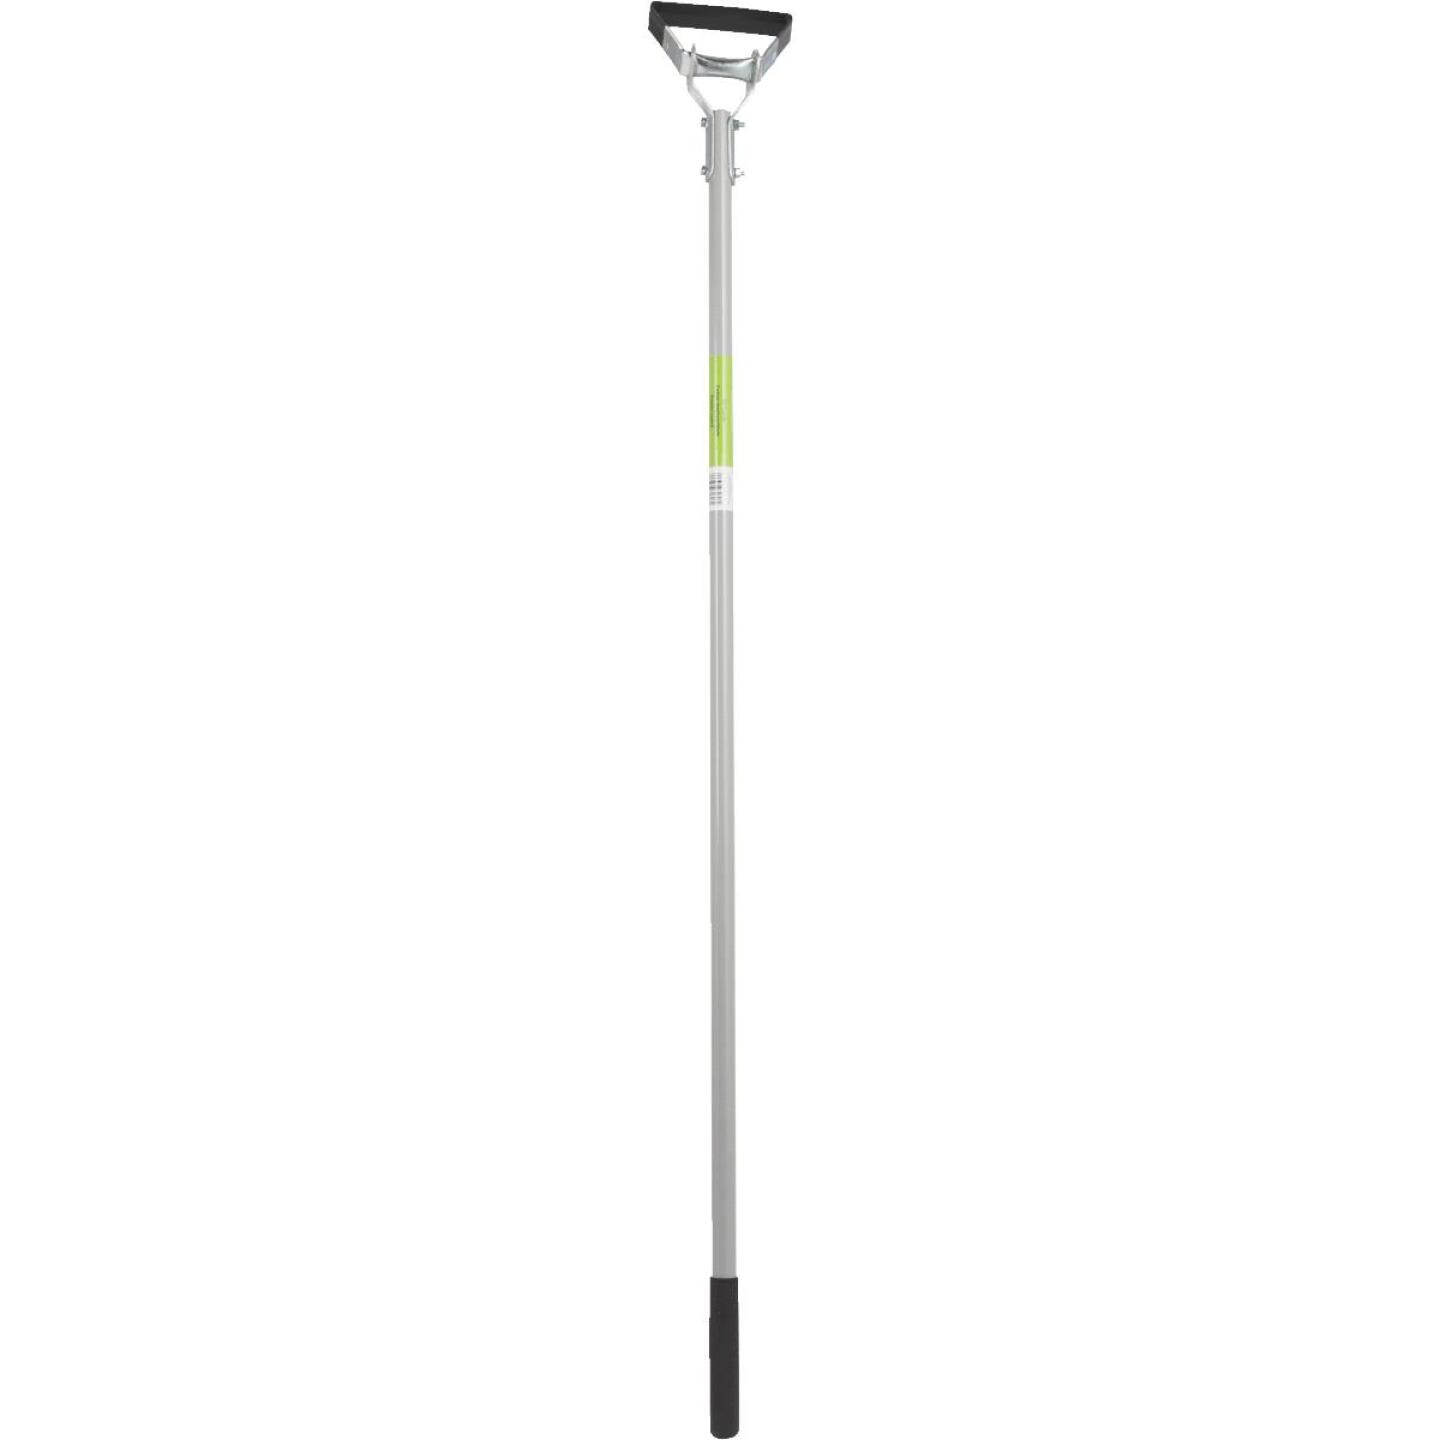 Best Garden 50 In. Fiberglass Handle Loop Action Hoe Image 2